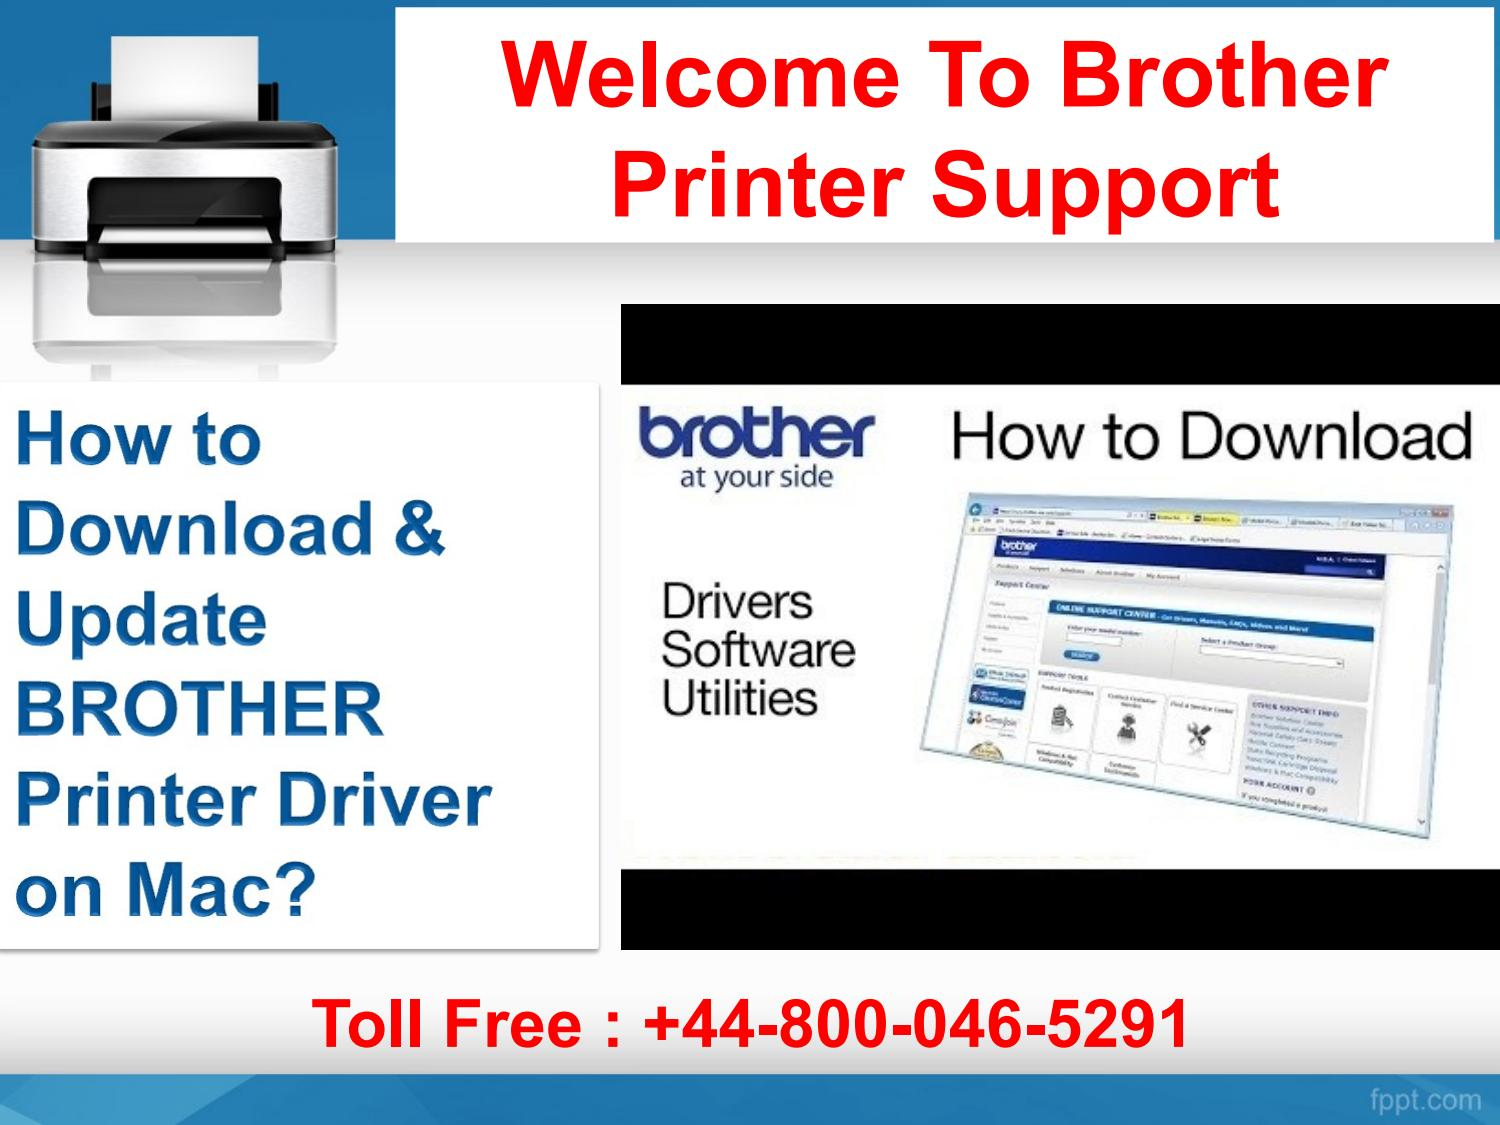 How to download & update brother printer driver on mac by